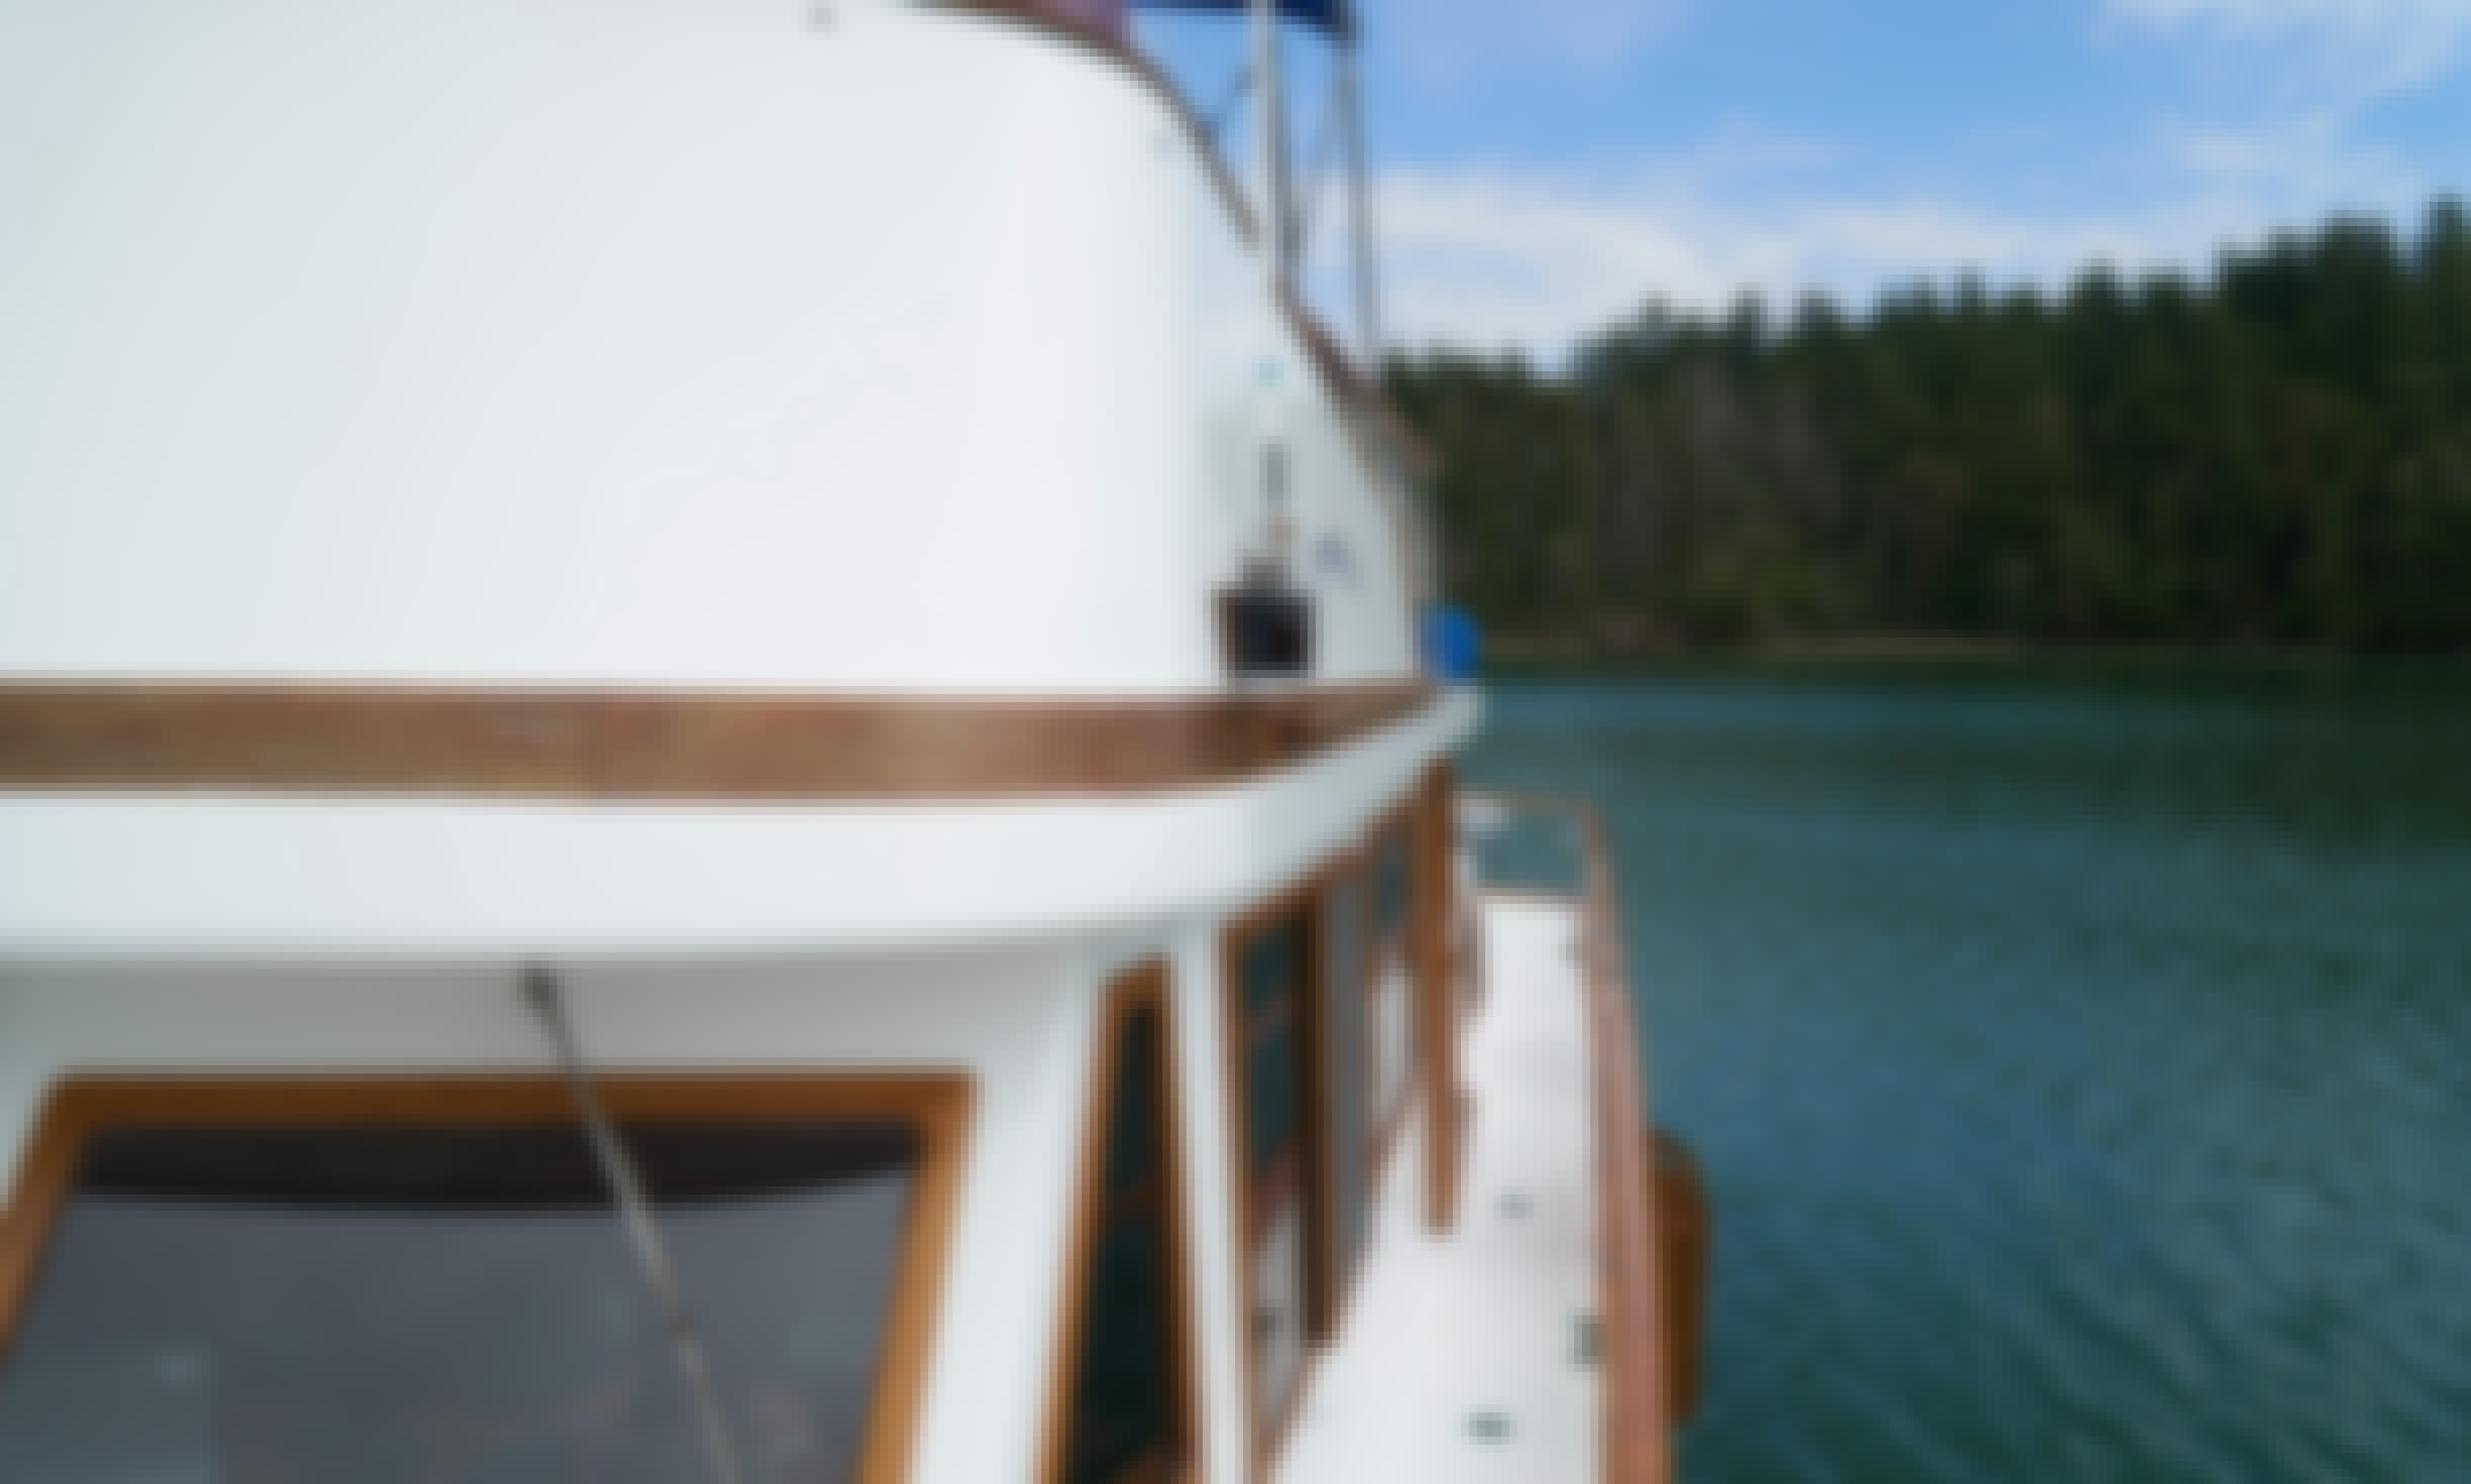 Charter this CHB 41' Aft Cabin Trawler for 6 People in Anacortes, Wa